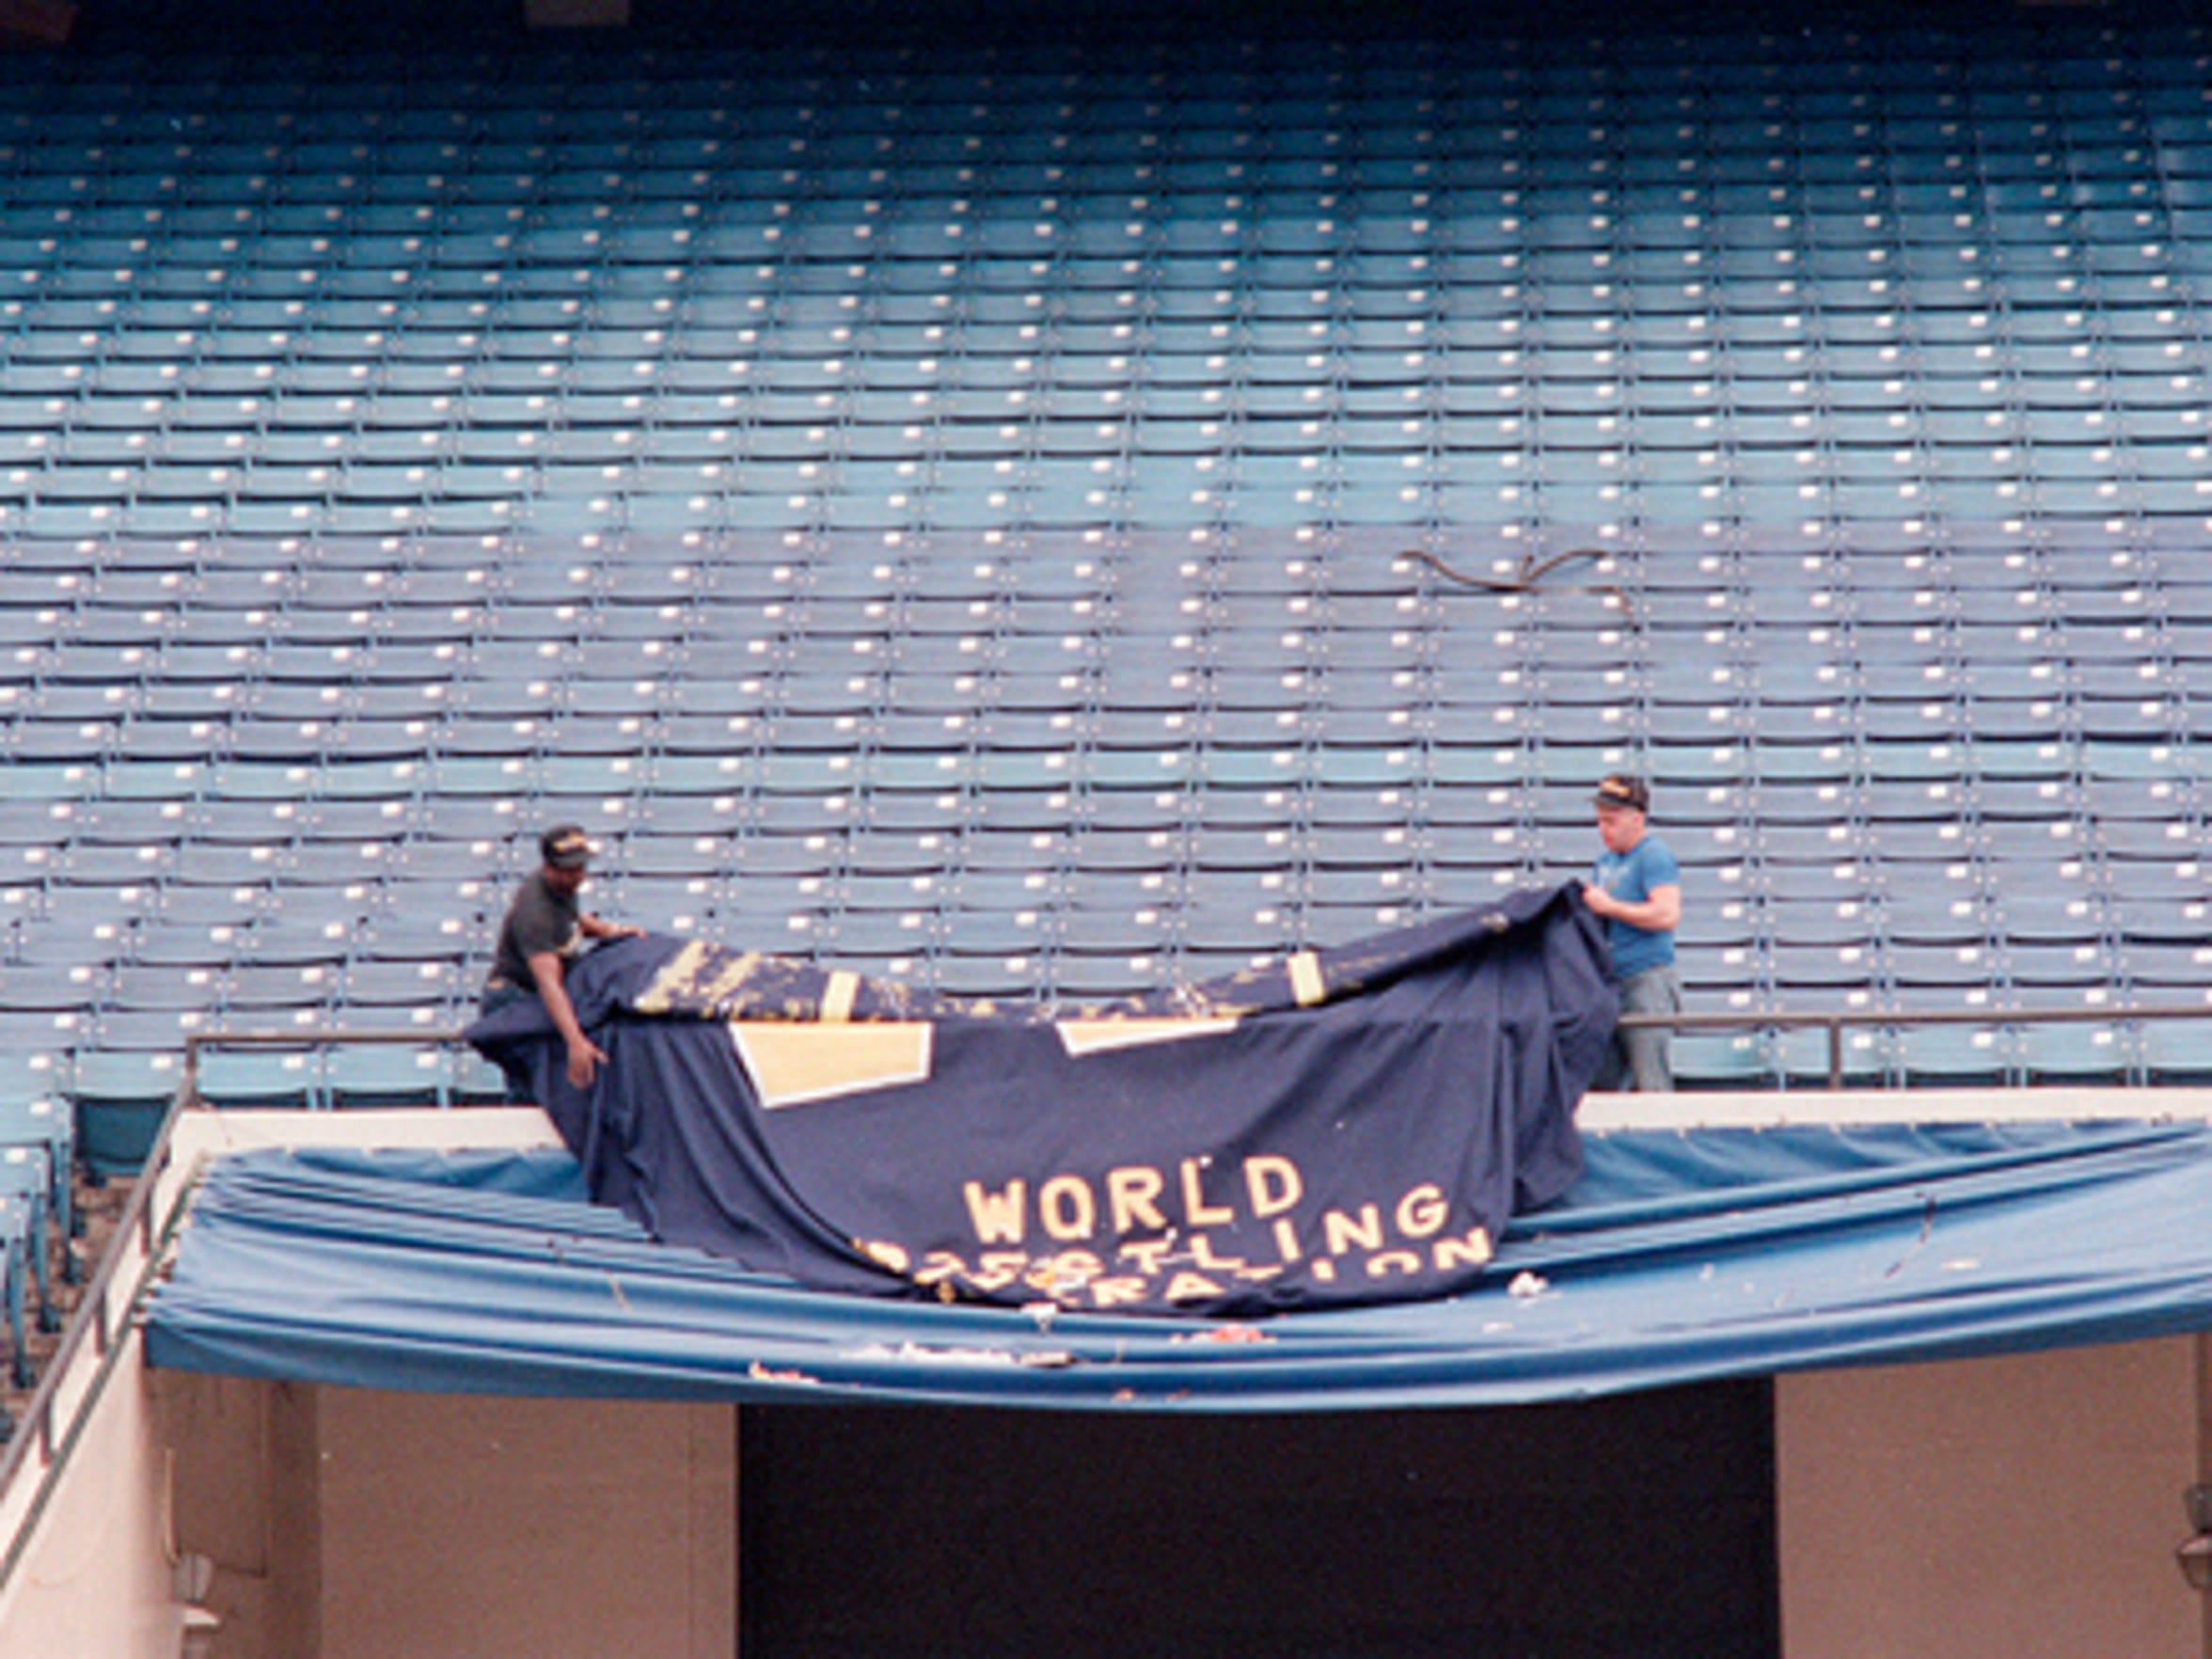 Crews take down WWF signage the day after WrestleMania